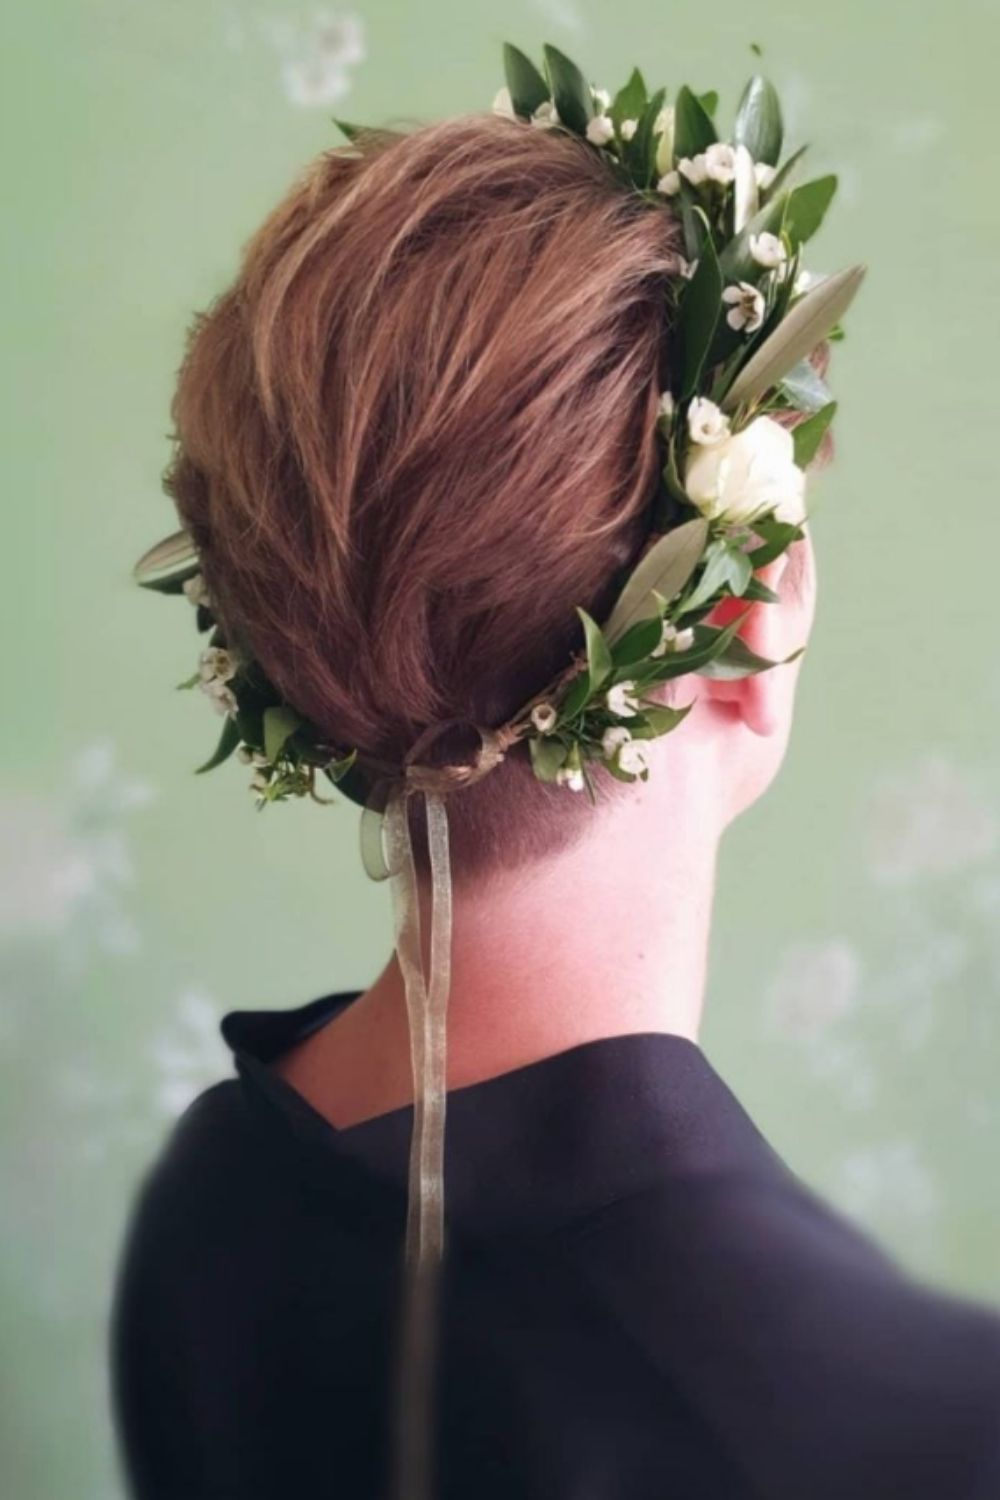 How to styles the wedding hairstyles for short hair